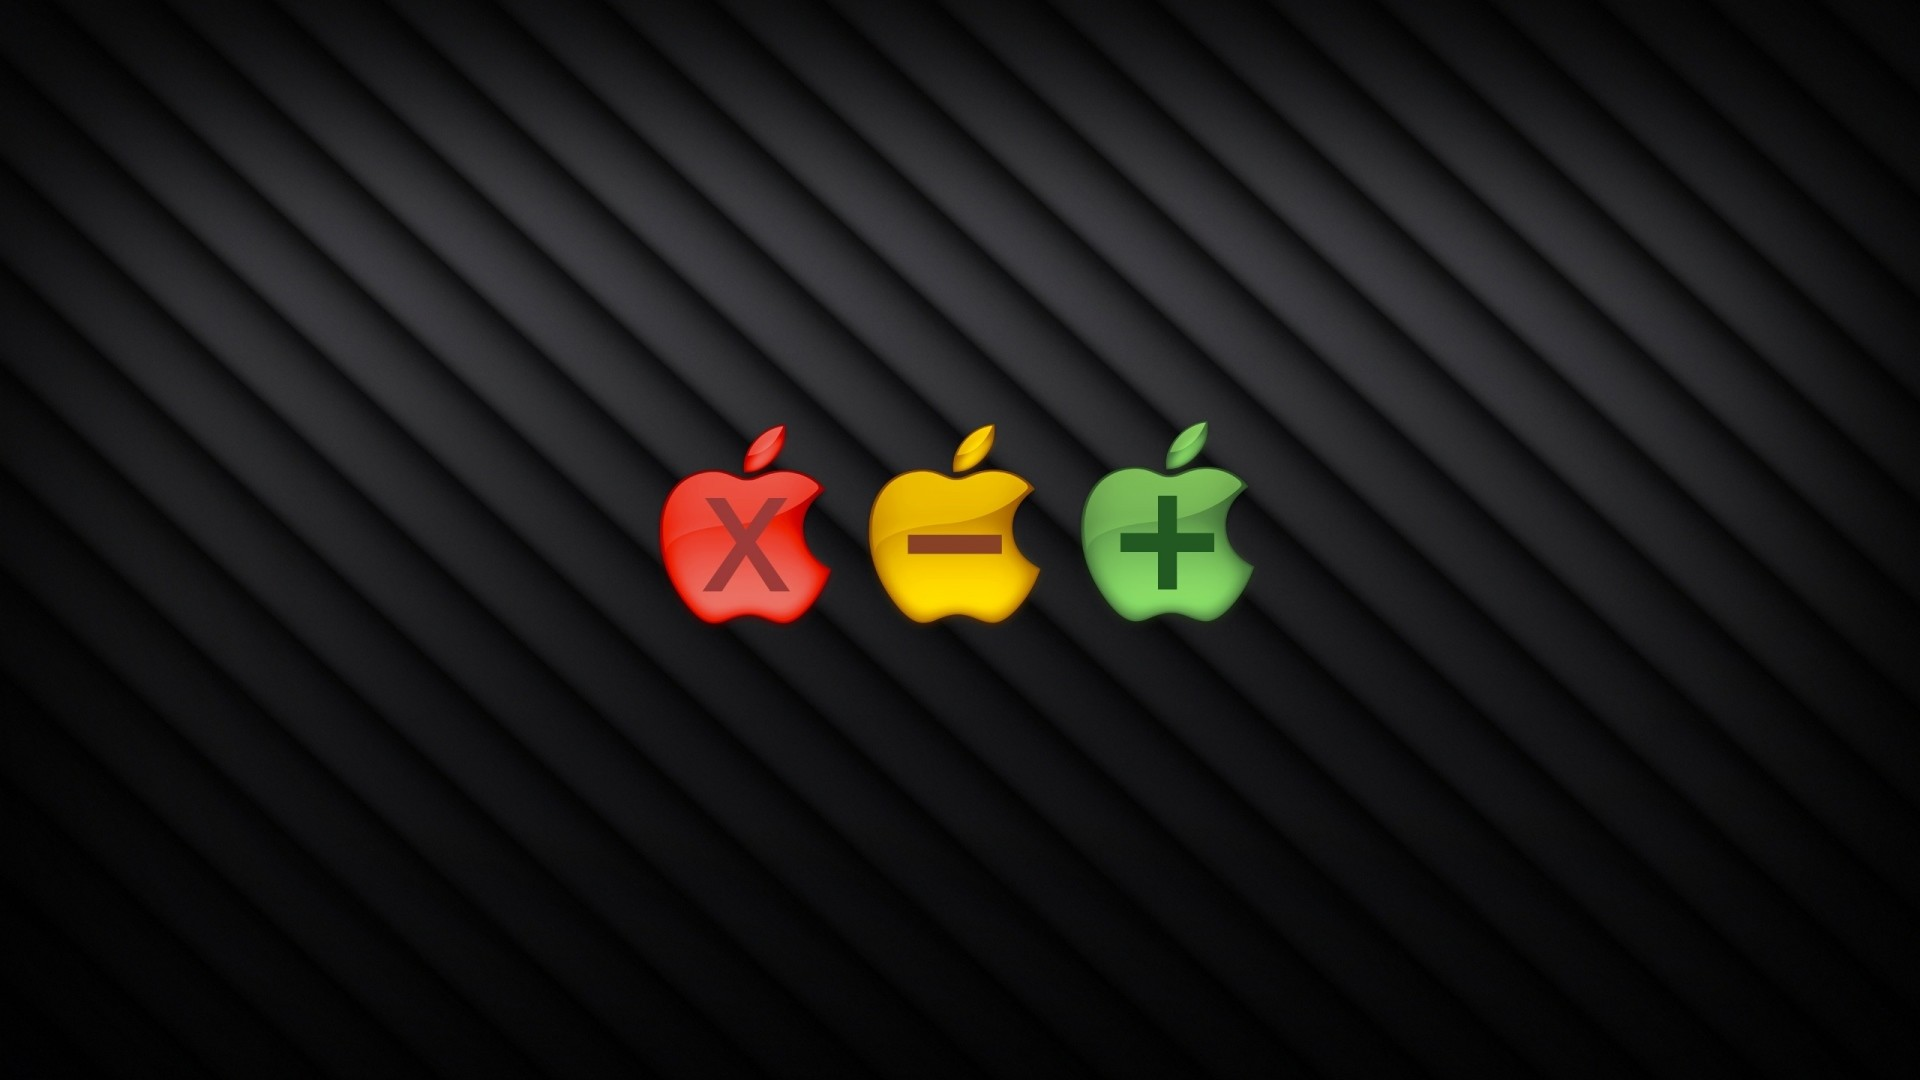 Apple Logo Hd Wallpapers For Iphone 1920 1080 Apple Logo: Mac Wallpaper 1920x1080 (80+ Images